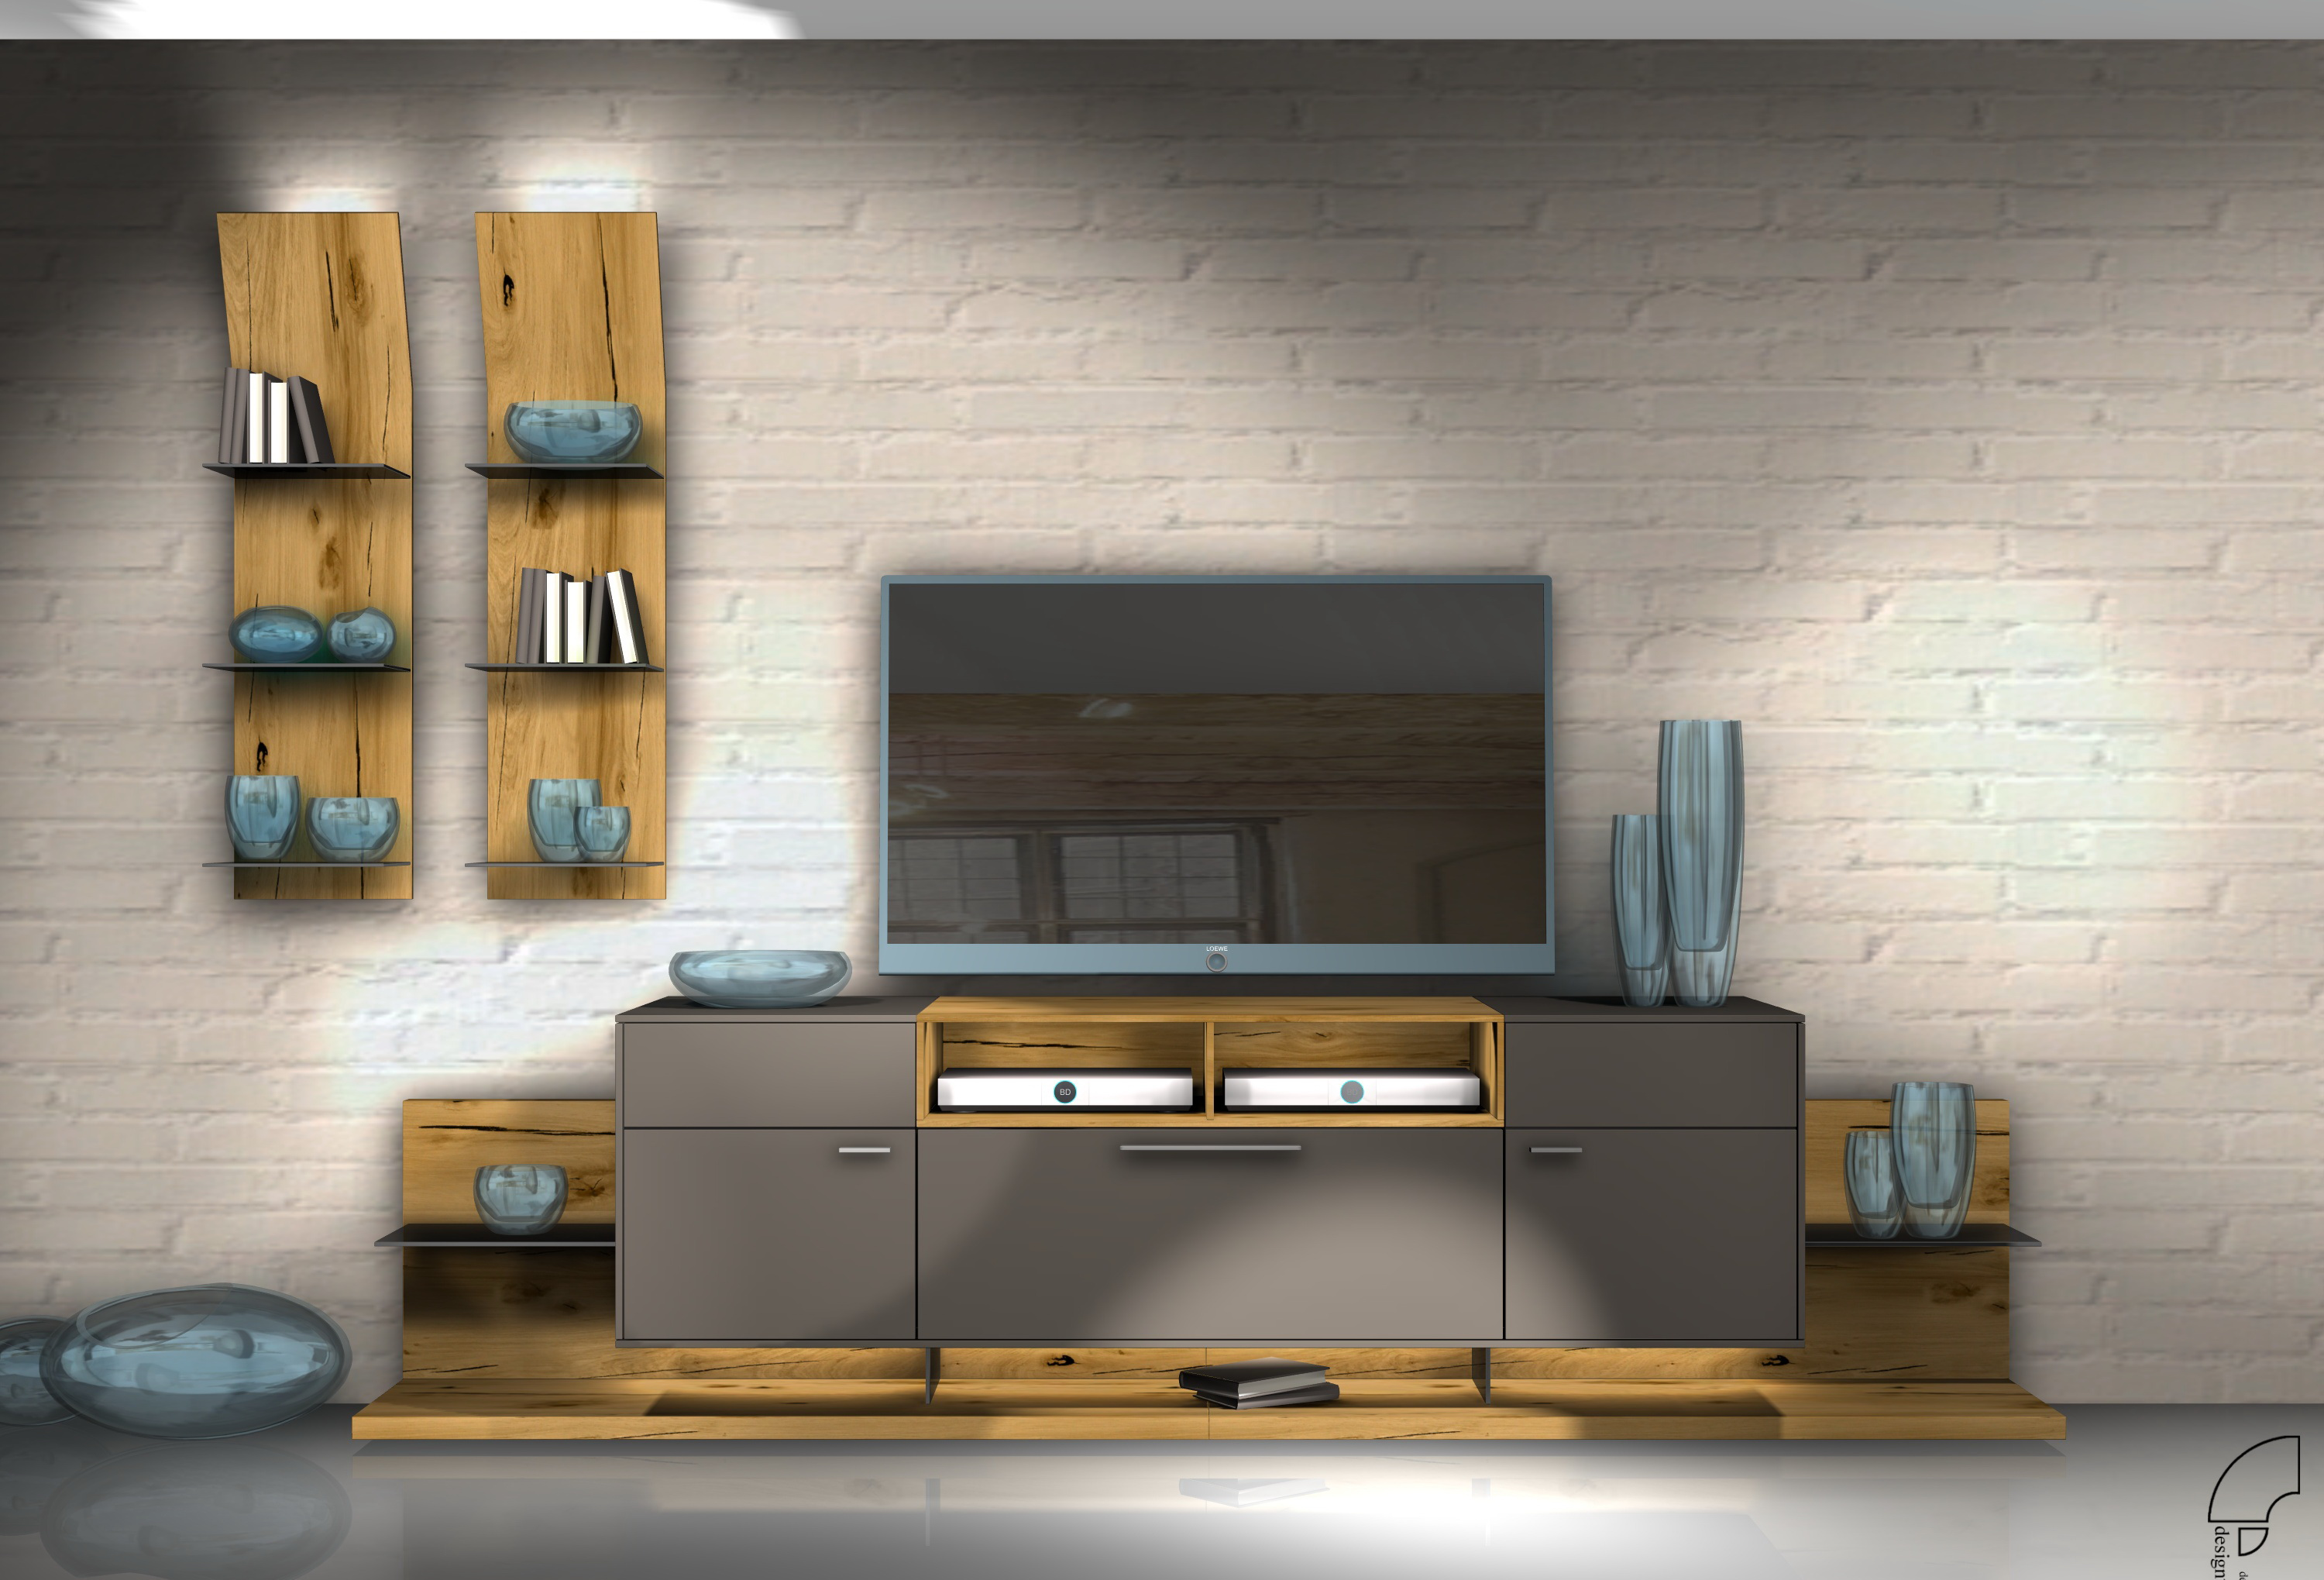 gwinner konsequent f r mediensysteme entwickelt. Black Bedroom Furniture Sets. Home Design Ideas